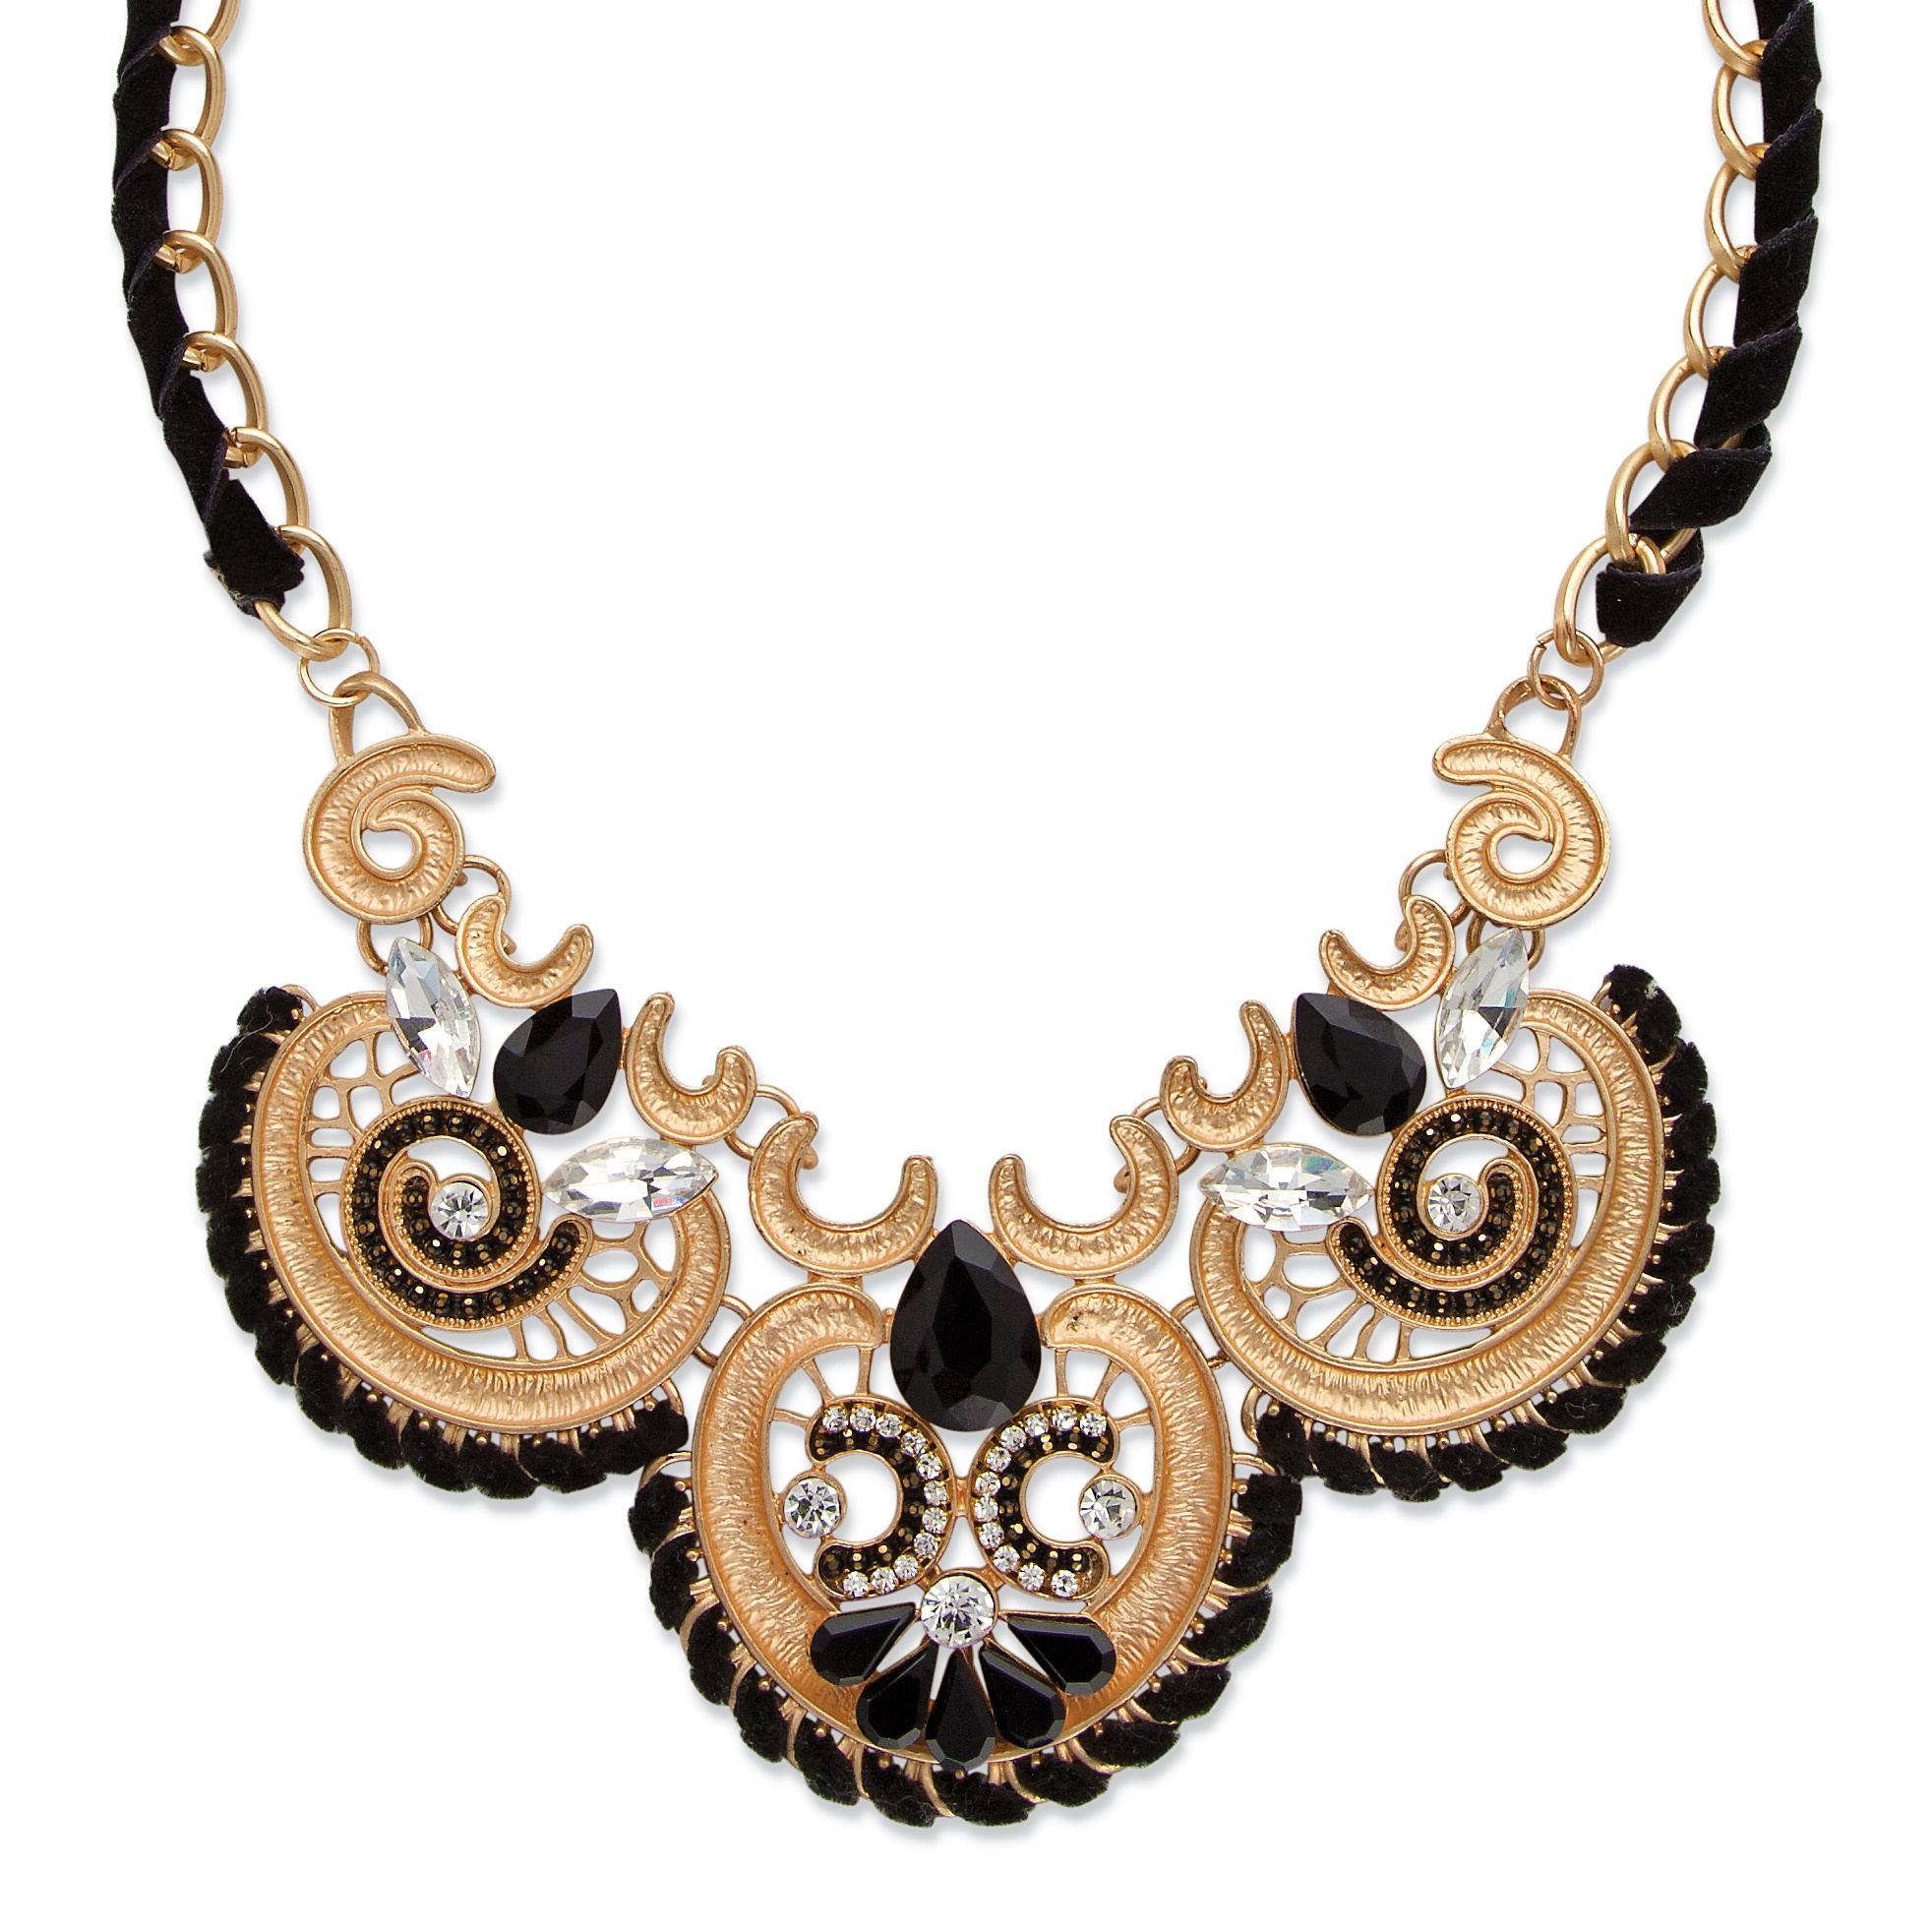 "Black and White Crystal Antiqued Gold Tone Scroll Statement Necklace 18"" - 20.5"""